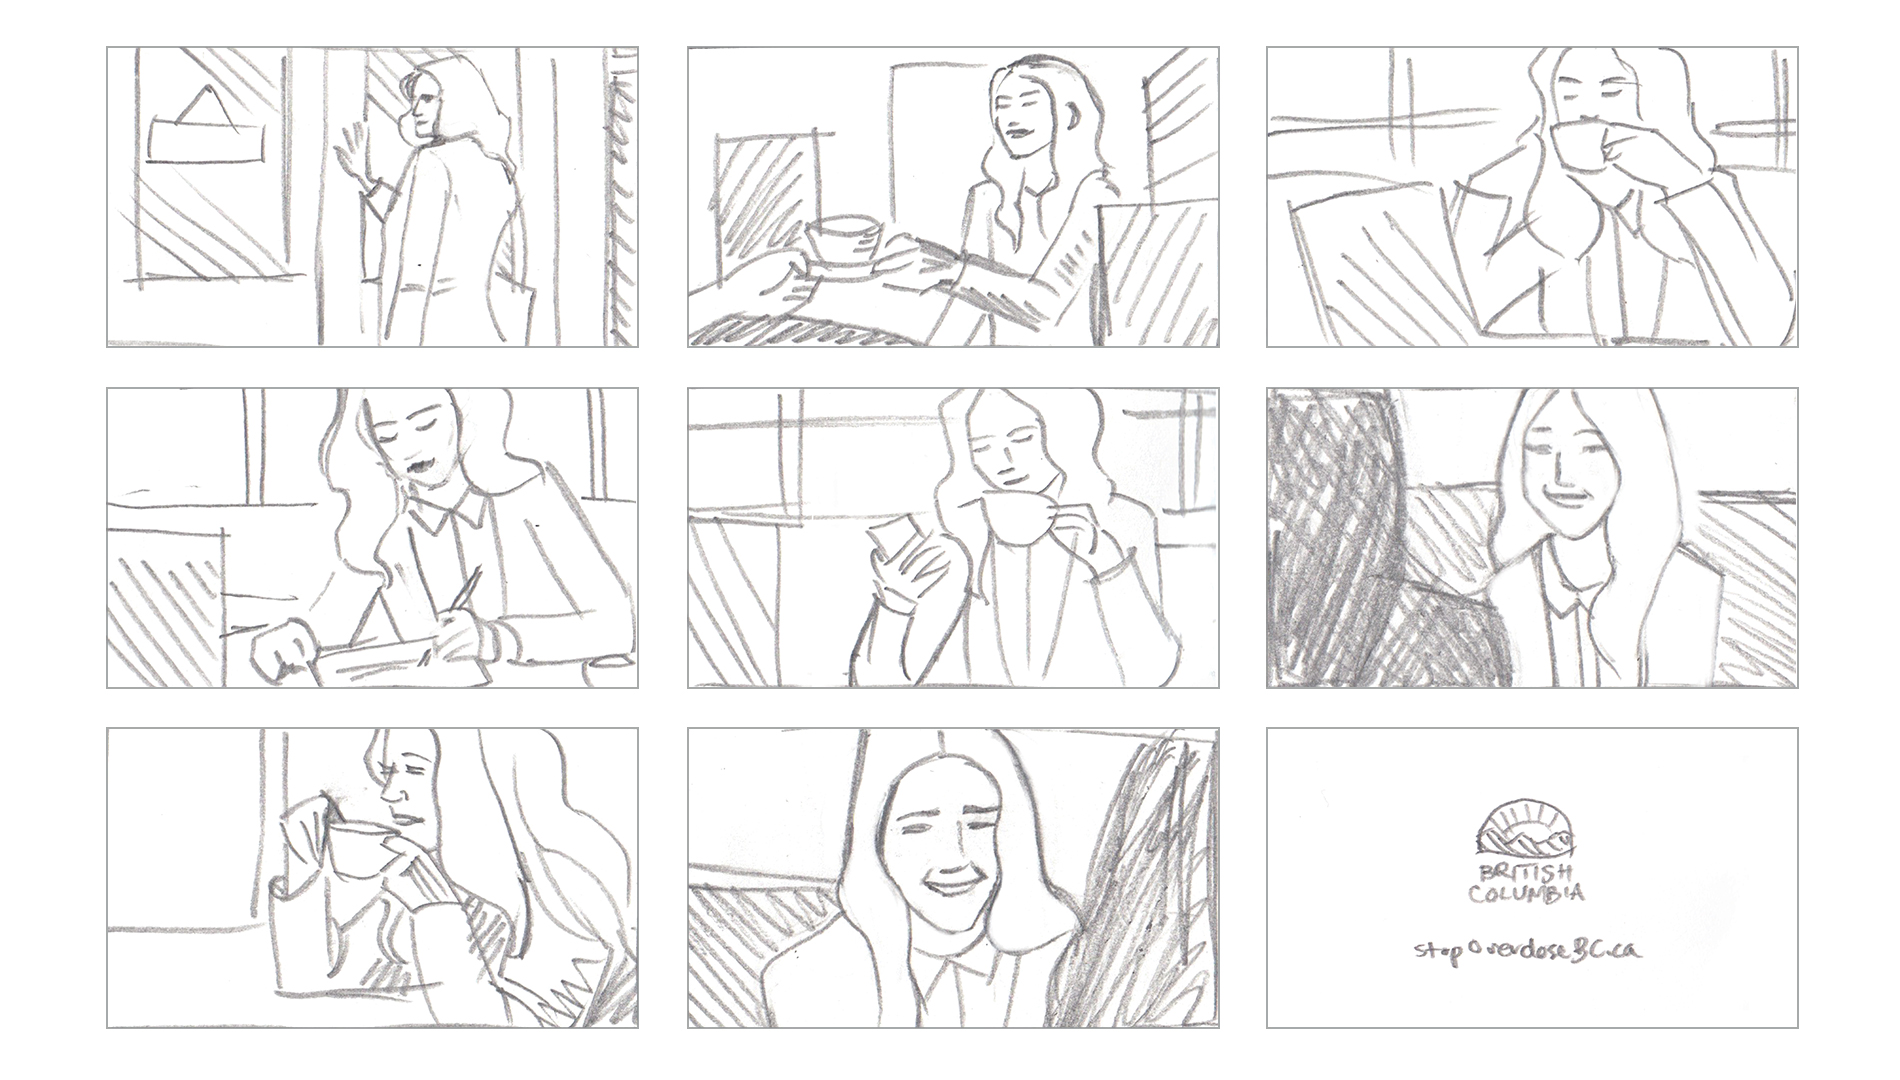 Stop Overdose Campaign Television Storyboard